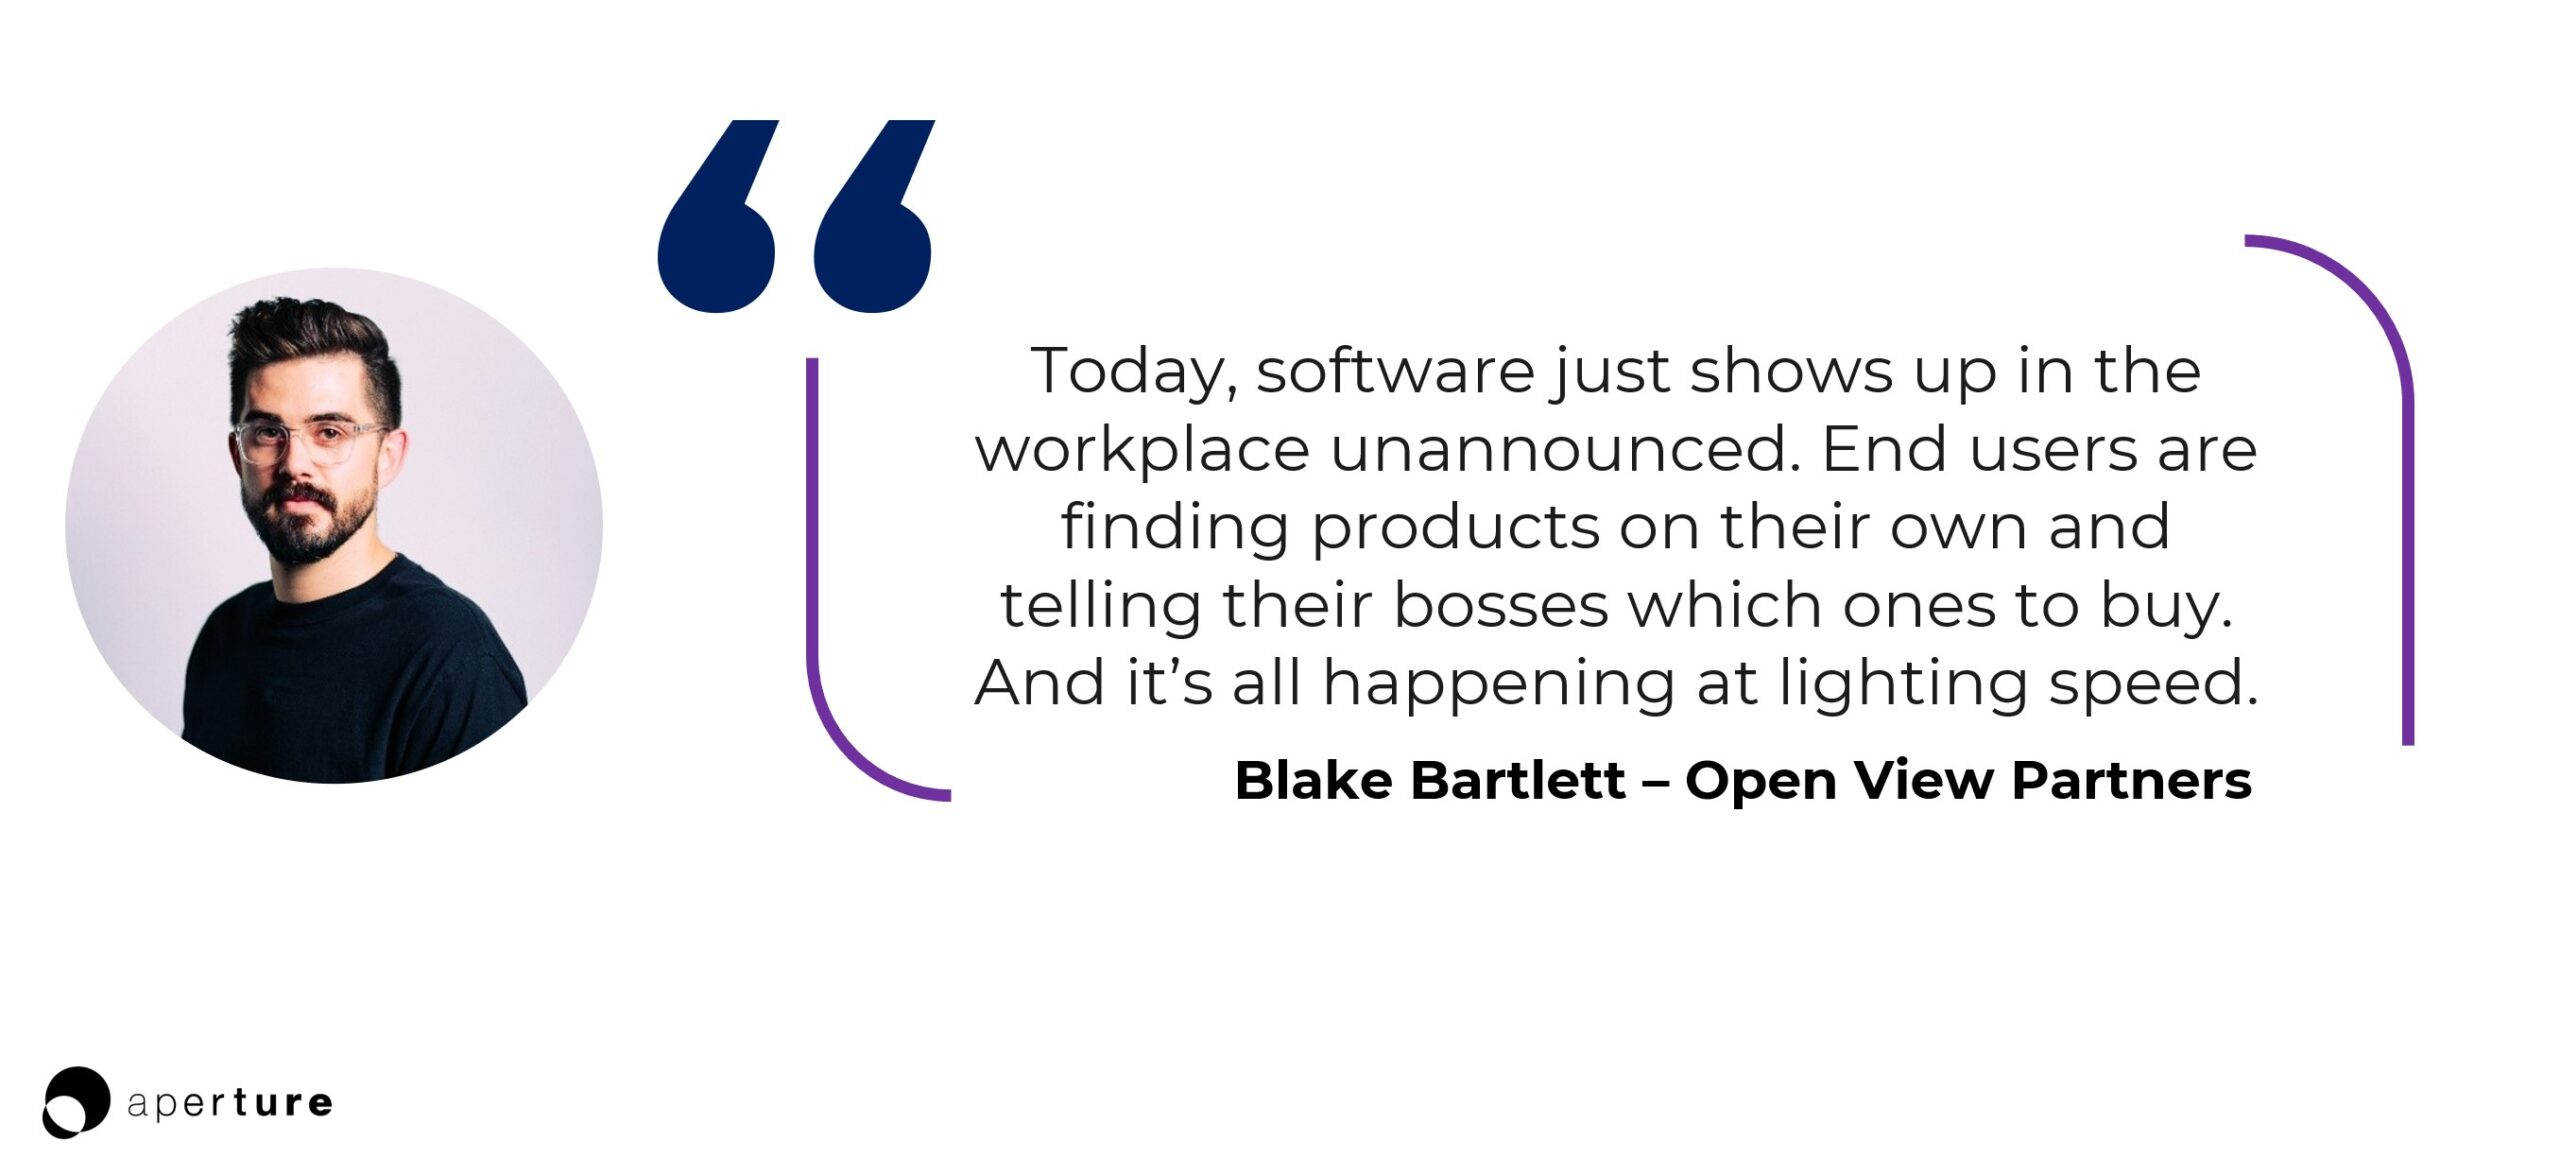 Blake Bartlett OpenView partners quote